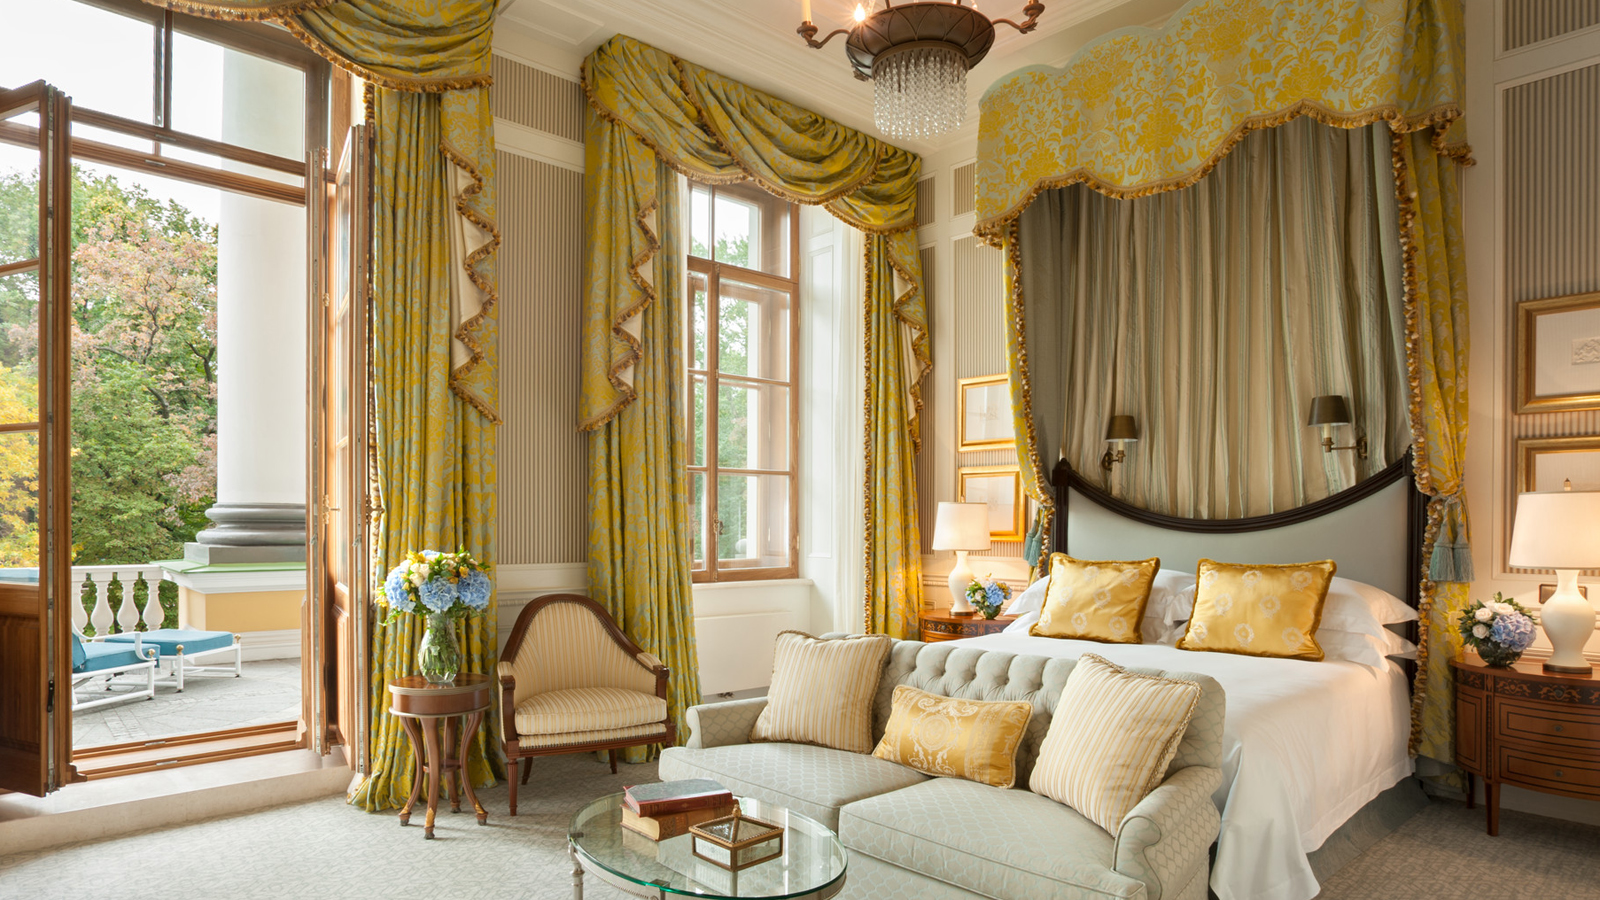 Best new hotels that opened in 2013 the luxury travel expert for Fourseason hotel